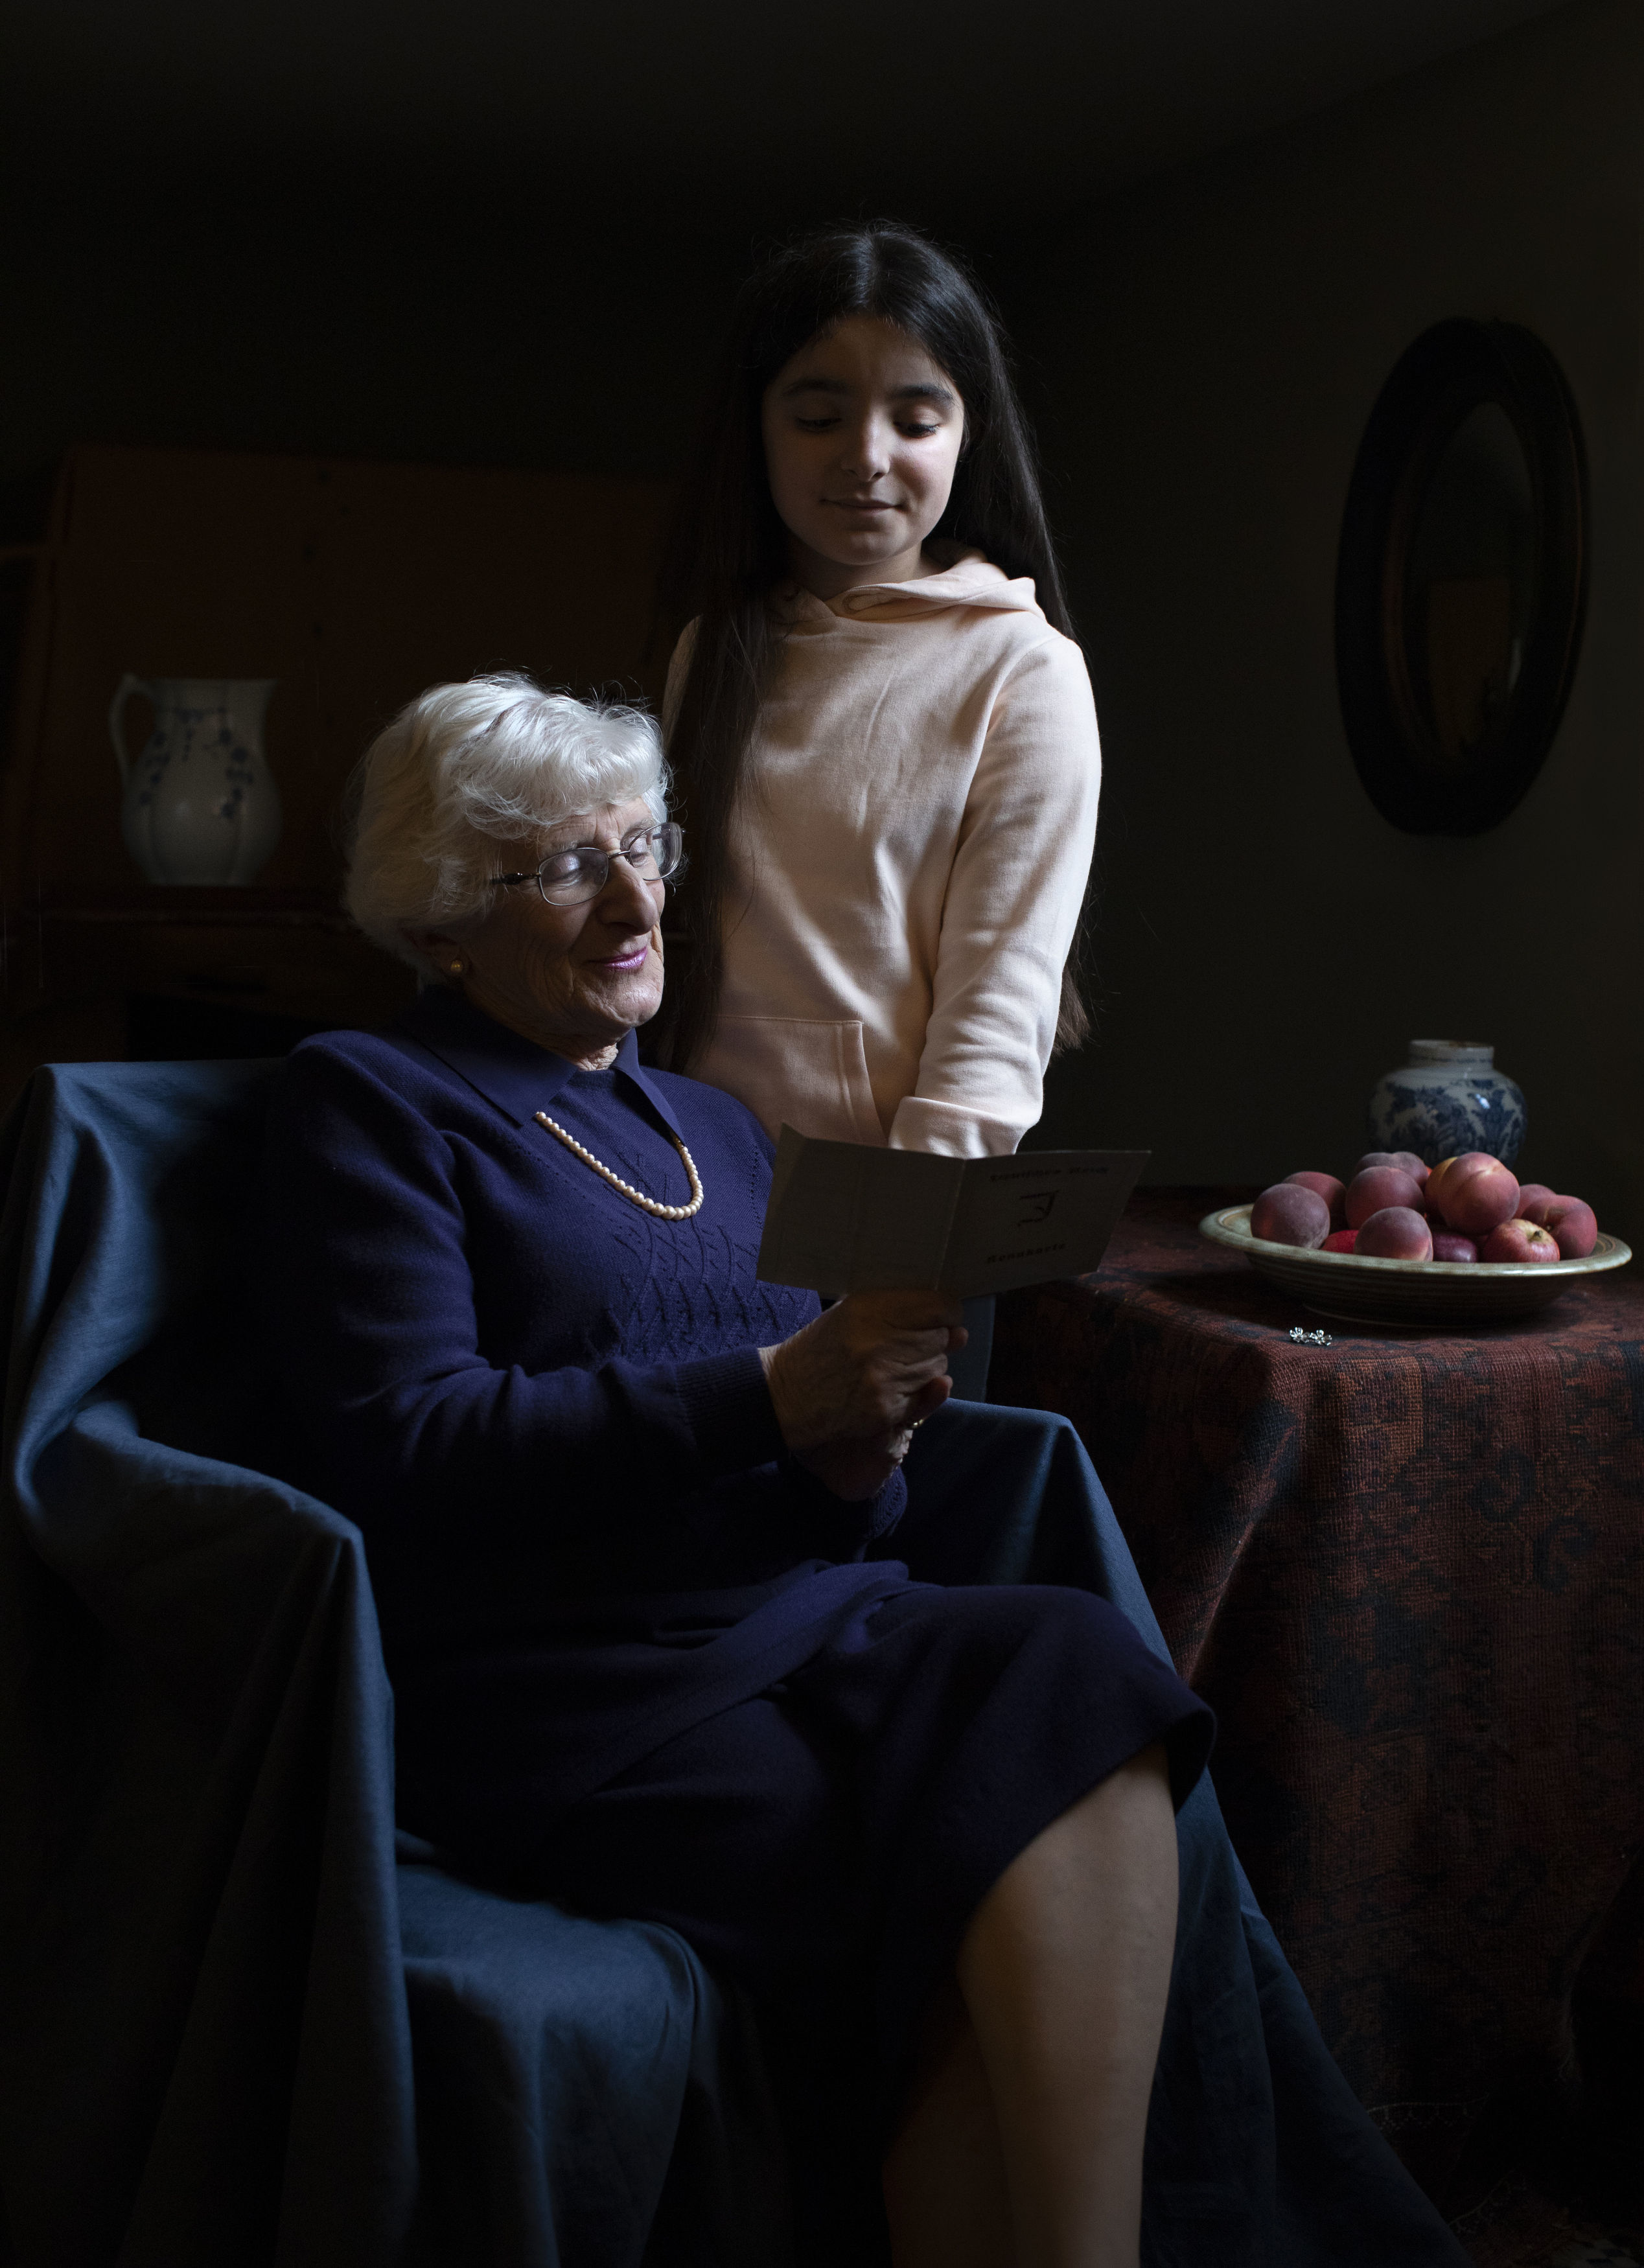 In this photo taken by Kate Middleton, Duchess of Cambridge and made available on Jan. 26, 2020, Yvonne Bernstein, originally from Germany, who was a hidden child in France throughout most of the Holocaust, is pictured with her granddaughter Chloe Wright, aged 11.